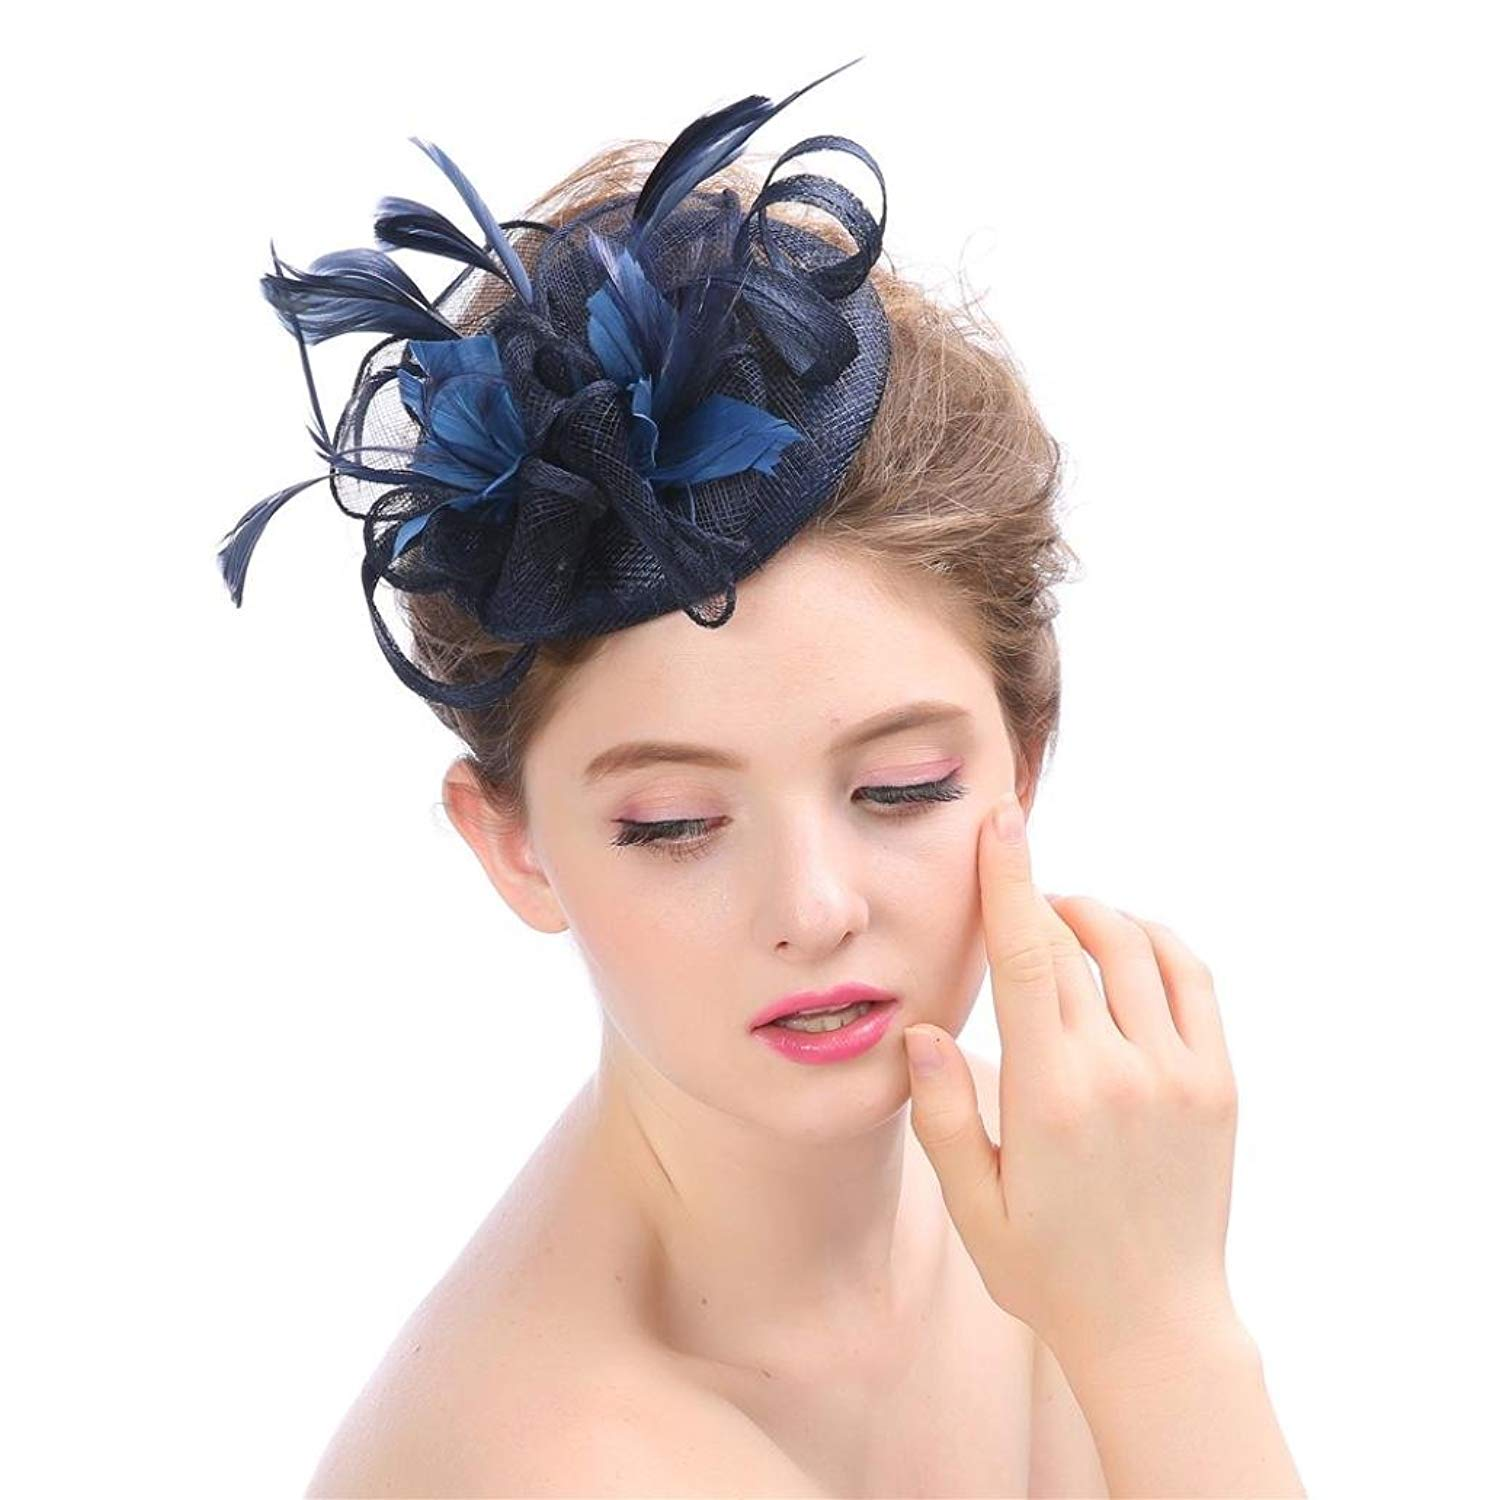 e924550cff4 Get Quotations · Vcenty Flower Feathers Fascinators Hat for Women Wedding  Cocktail Flower Mesh Hair Clip Tea Party Kentucky